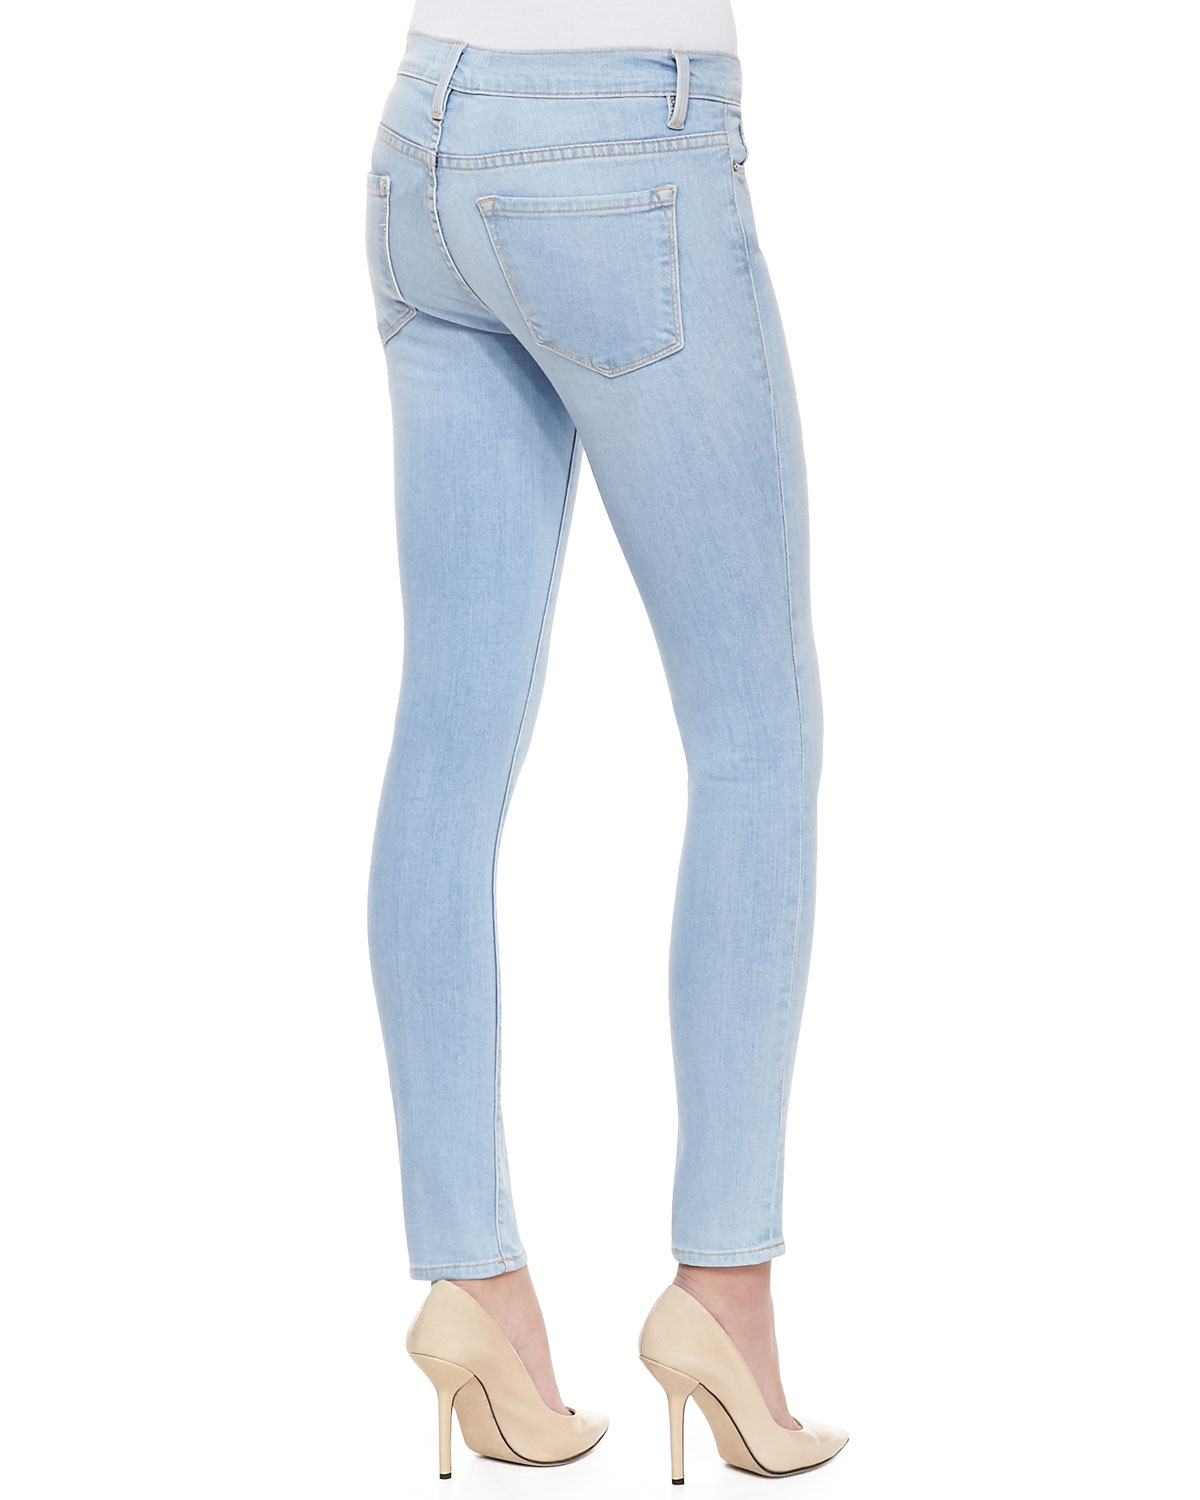 William Rast Jeans Women